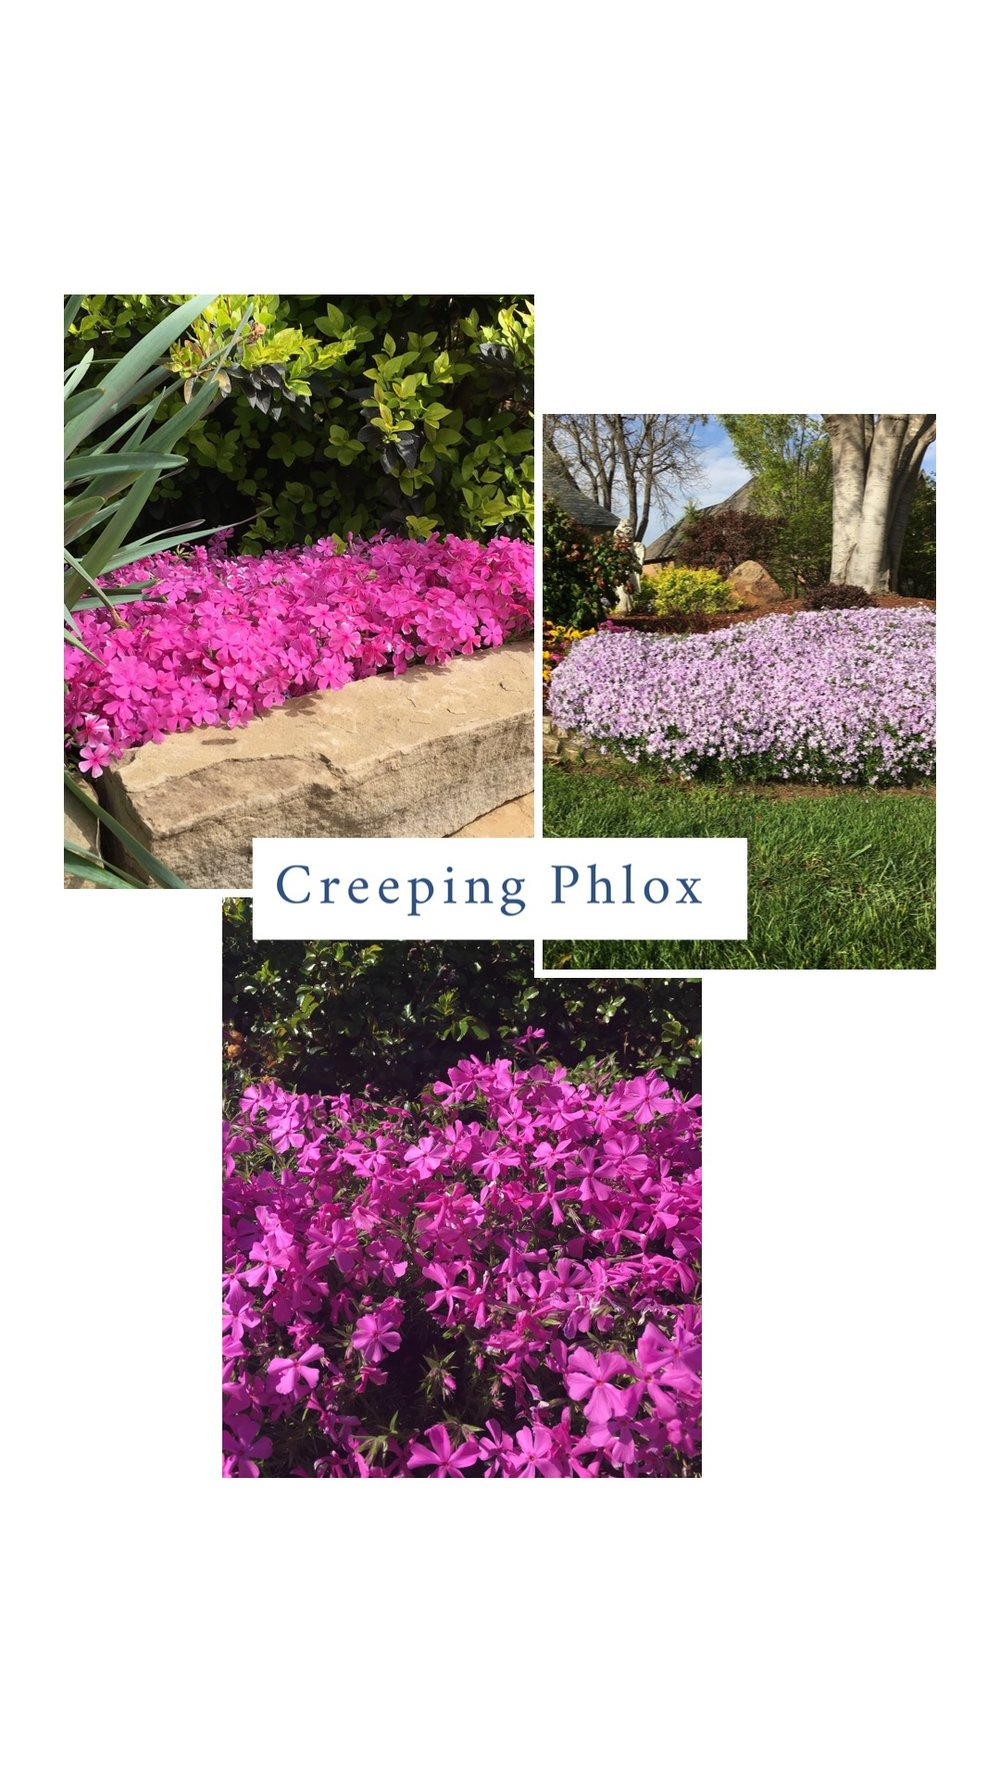 "Creeping Phlox (Phlox stolonifera) . The first to welcome spring each year. Creeping phlox produces a spring-like carpet in pastel hues of white, lavender, red and pink. Creeping phlox is a moderate grower that can spread up to 2' but only reaches 4-6"" in height. It requires full sun, but will tolerate a couple hours of shade each day. Borders, walls, and around boulders are where it looks best. In my garden, you will find it cascading over a rock retaining wall. It tolerates most soils as long as it is well drained. The plant requires little maintenance. Mites are about the only insect problem it will have."